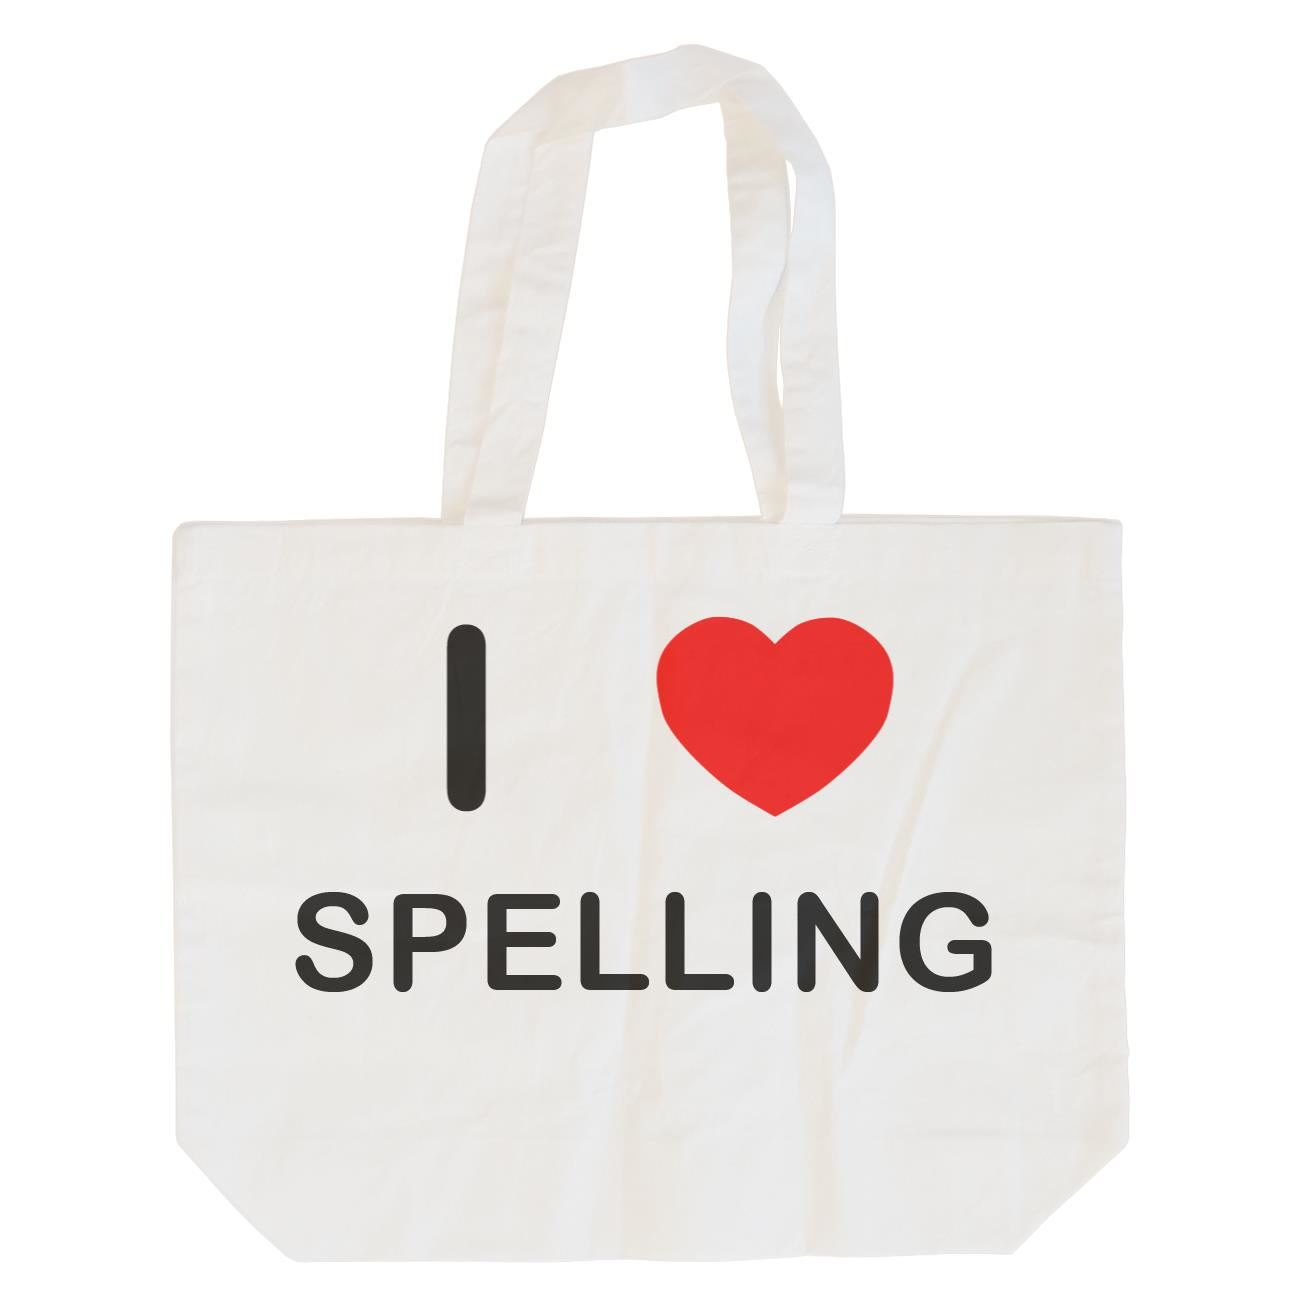 I Love Spelling - Cotton Bag | Size choice Tote, Shopper or Sling